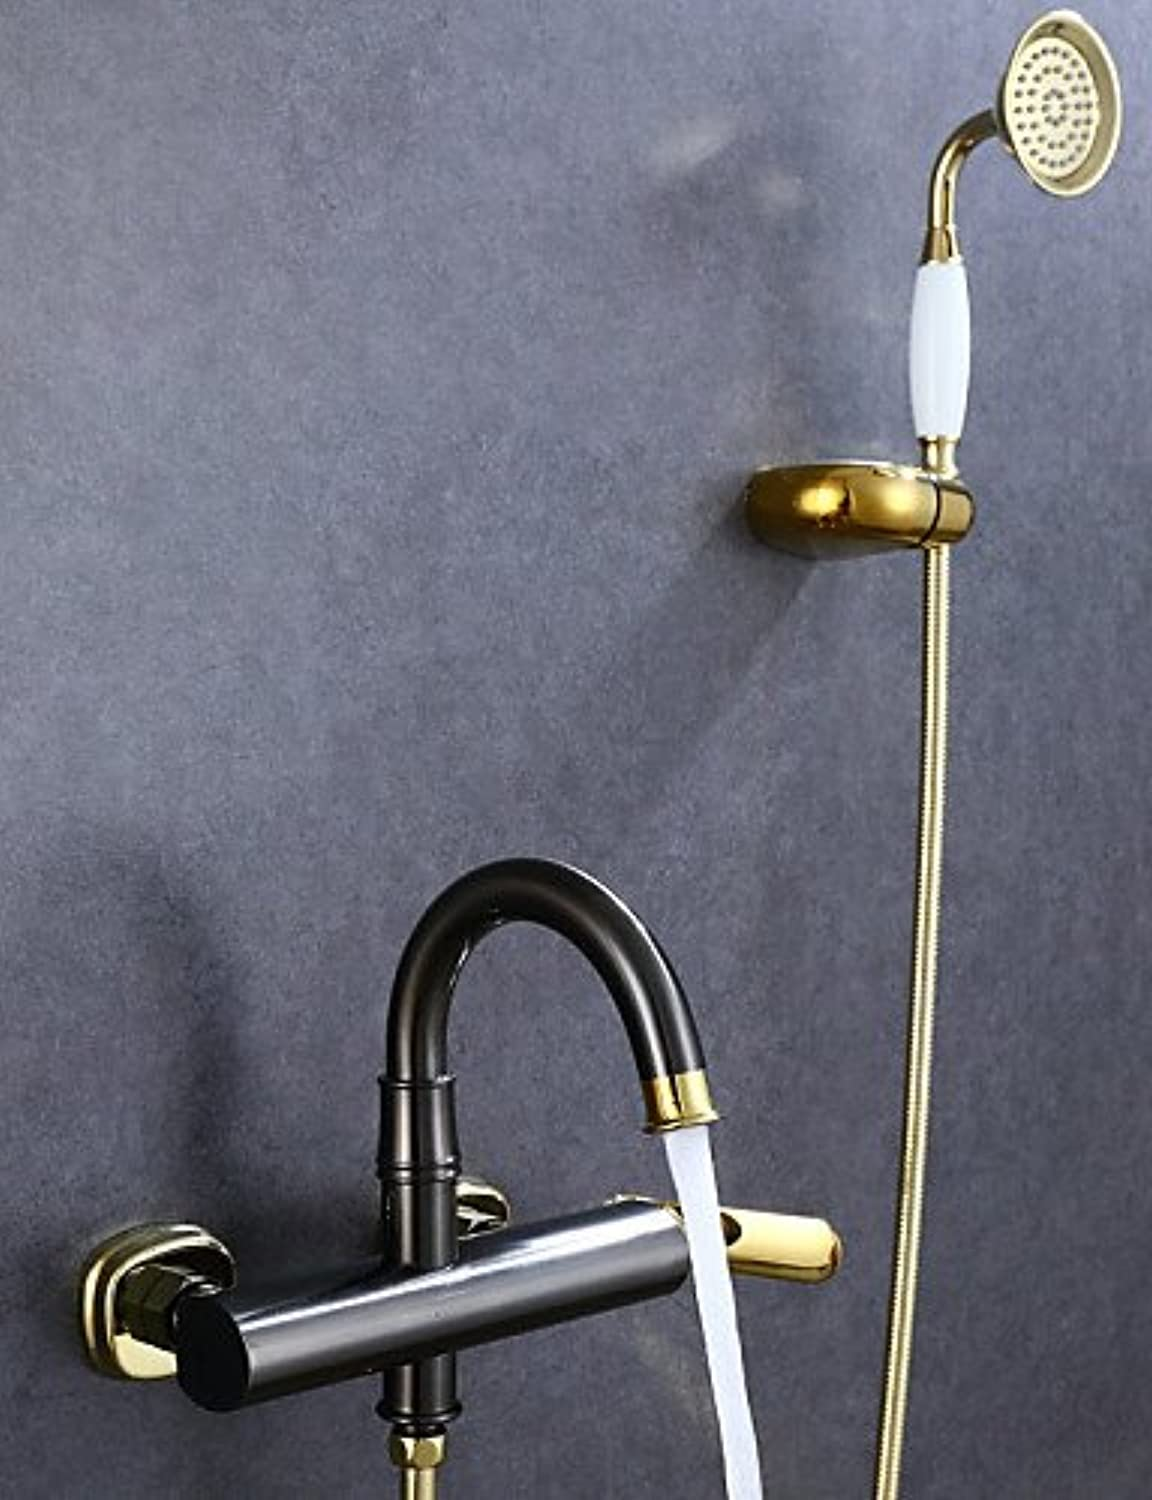 DF Shower Faucet Antique Handshower Included Brass Oil-rubbed Bronze